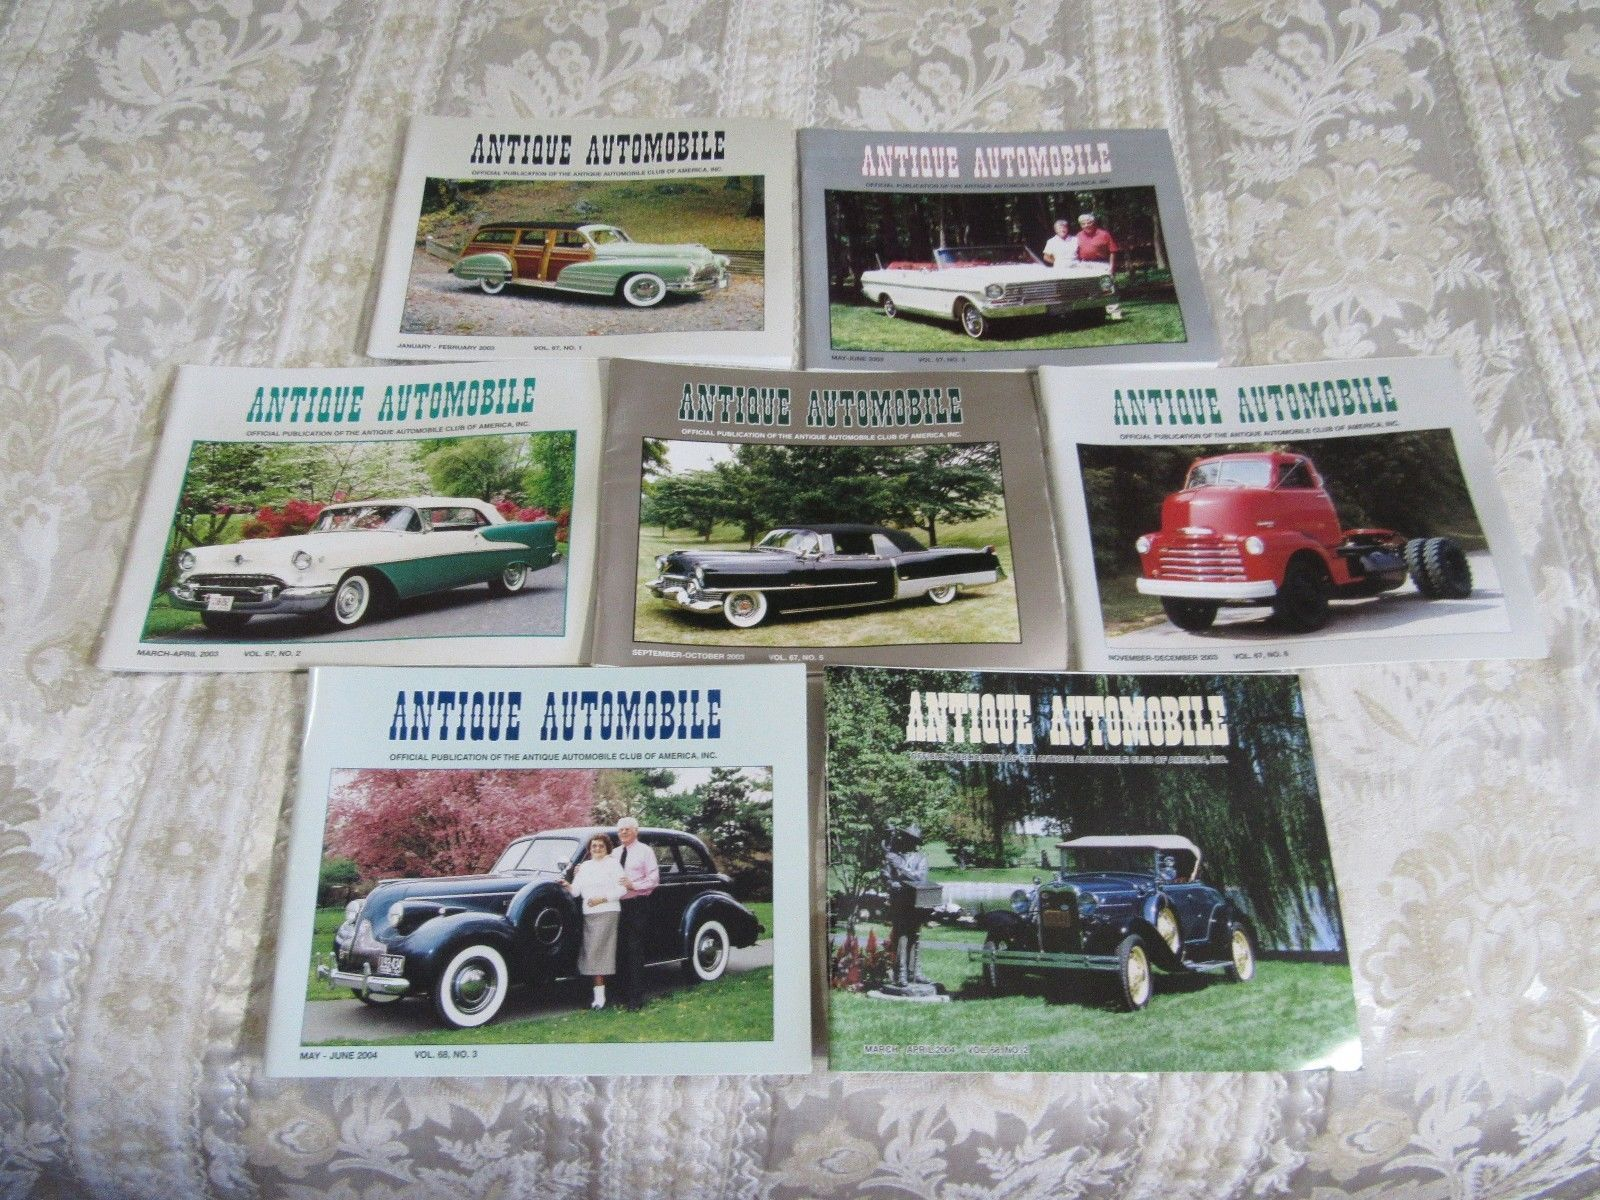 Antique Automobile Magazine 7 Issues 2003/4  VOL. 67 68  AACA Car Club Mixed Lot